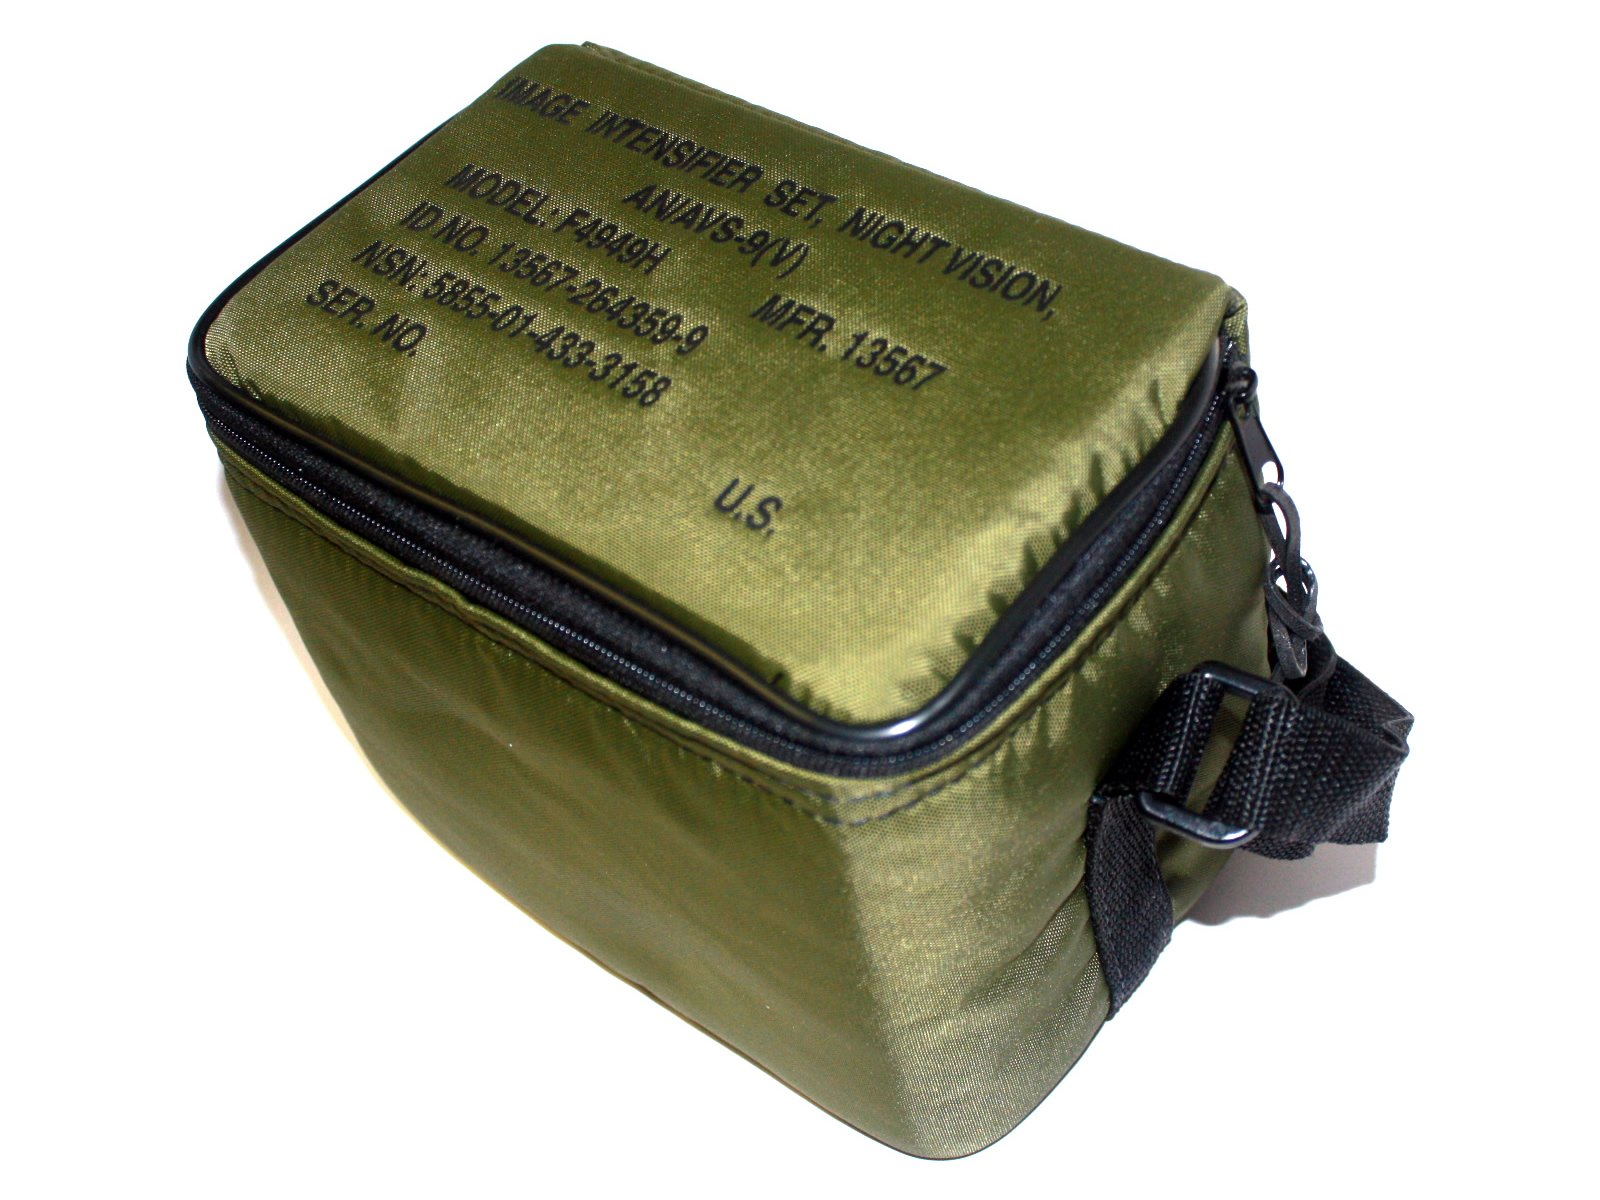 AN/AVS-9(V) F4949H ANVIS Night Vision Goggle NVG OD Green Carrying Case with Foam and Strap